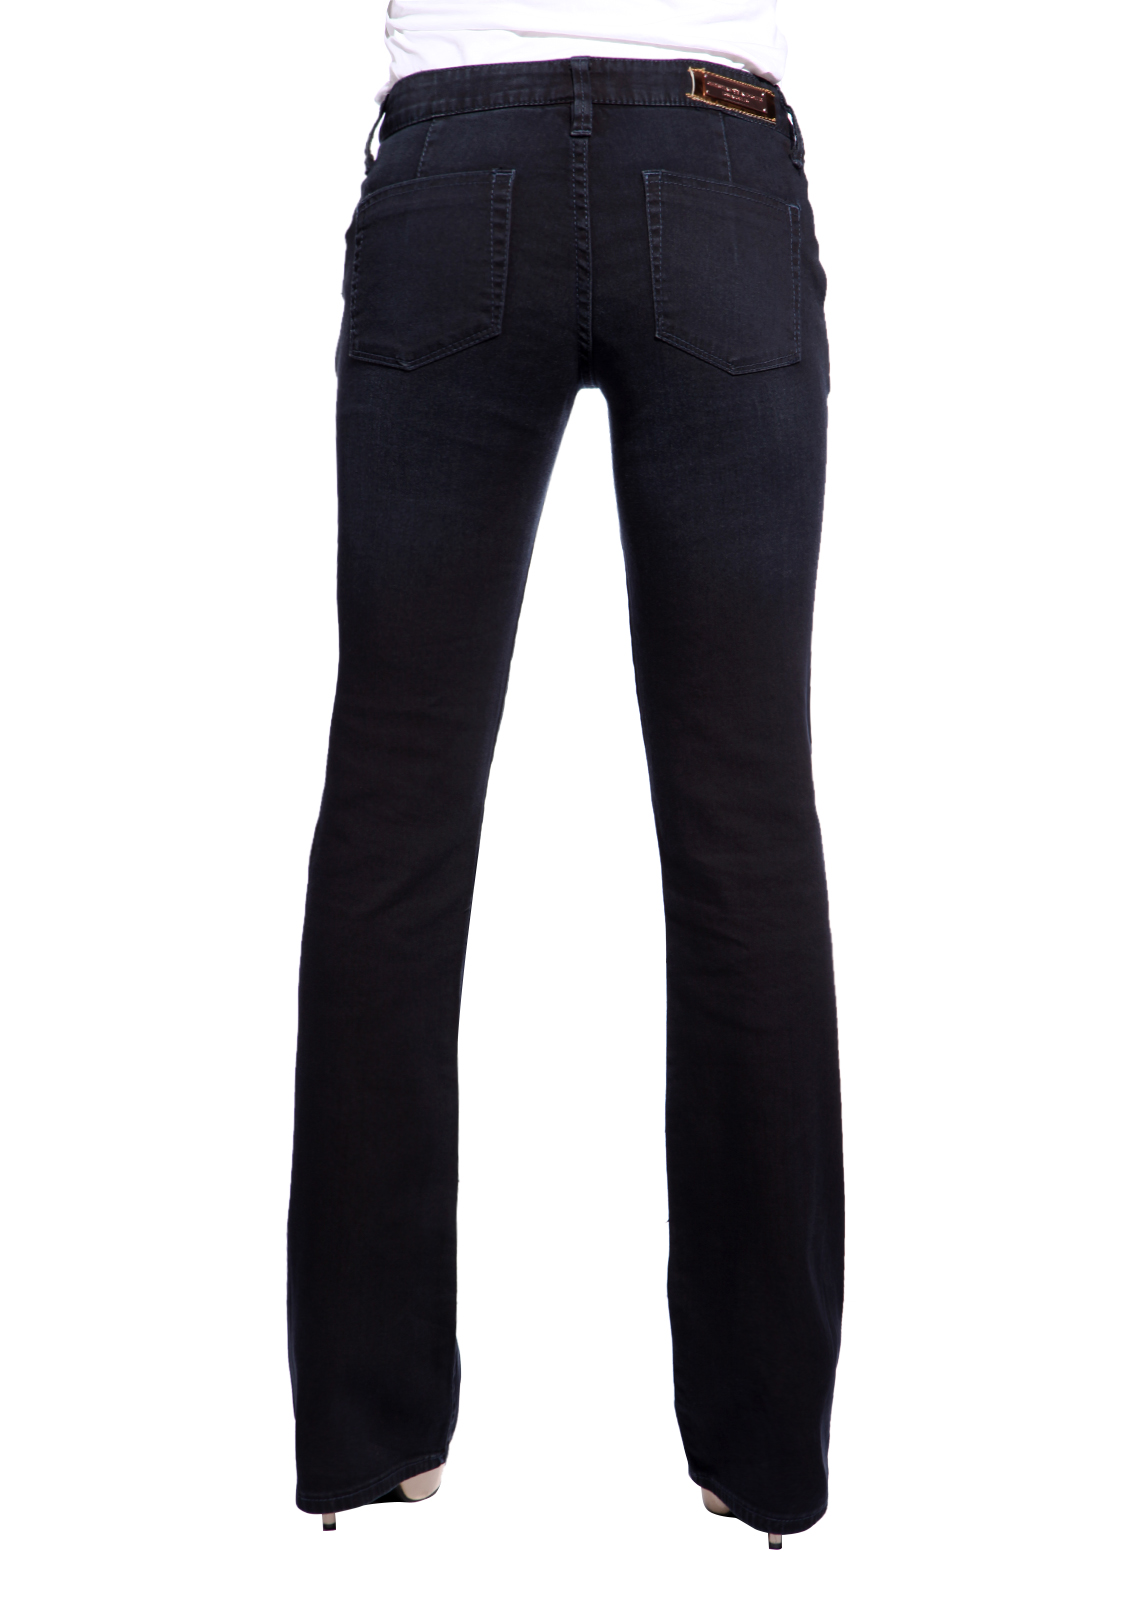 Find great deals on eBay for women slim jeans black. Shop with confidence.